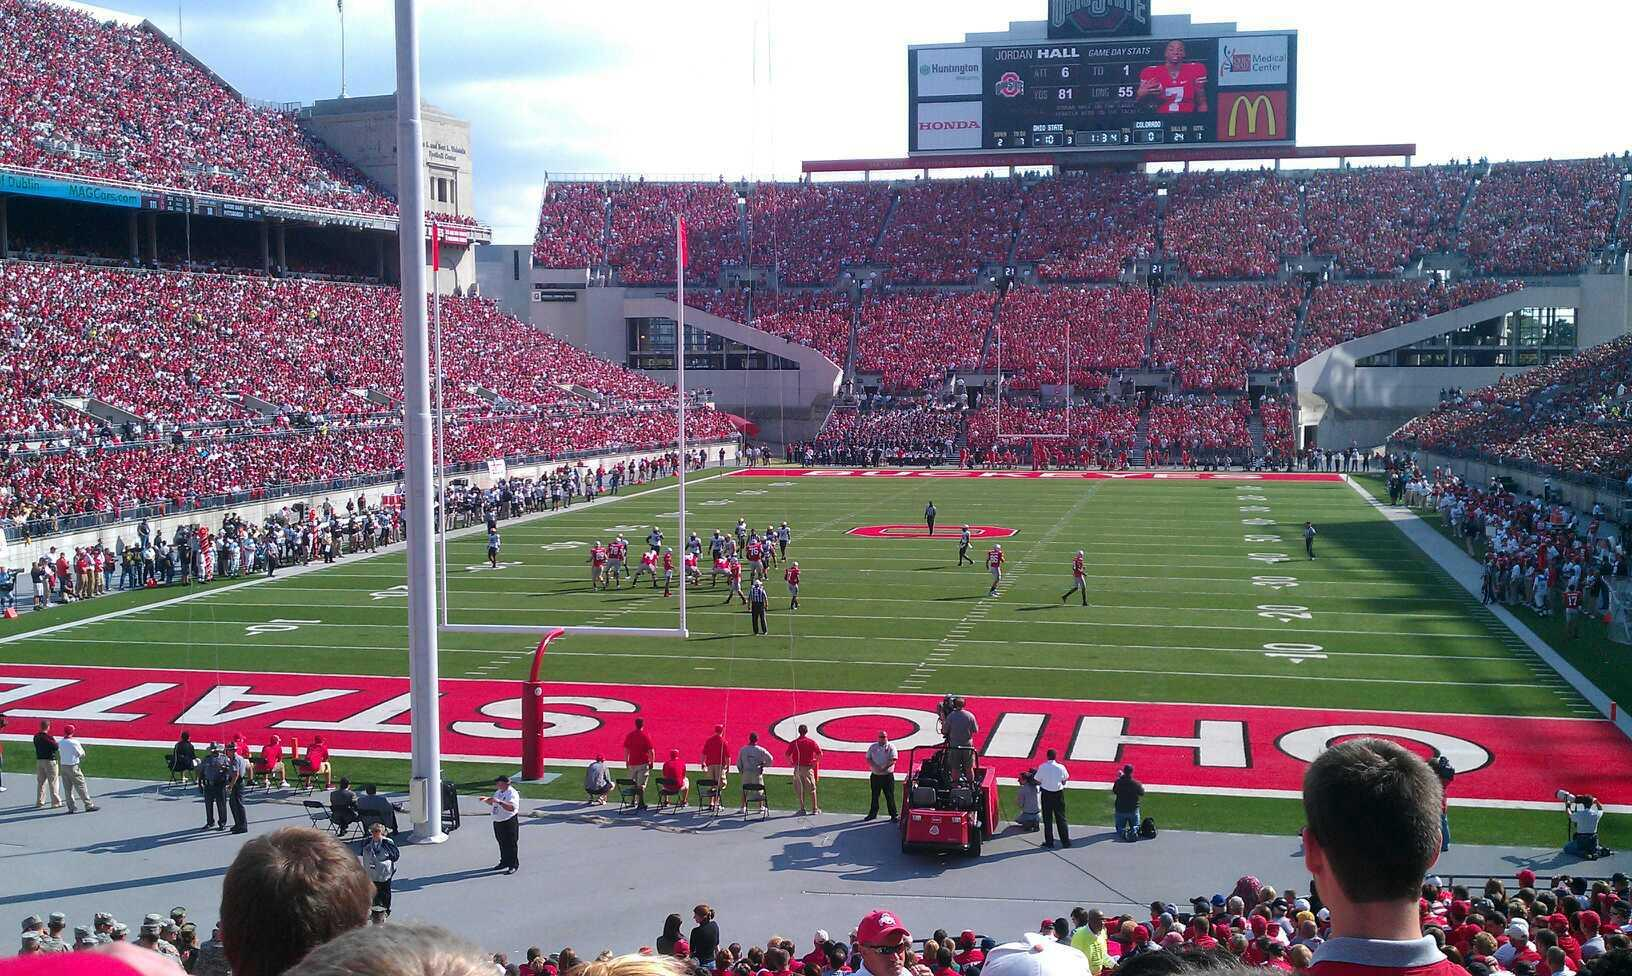 Ohio Stadium Section 3A Row 10 Seat 18